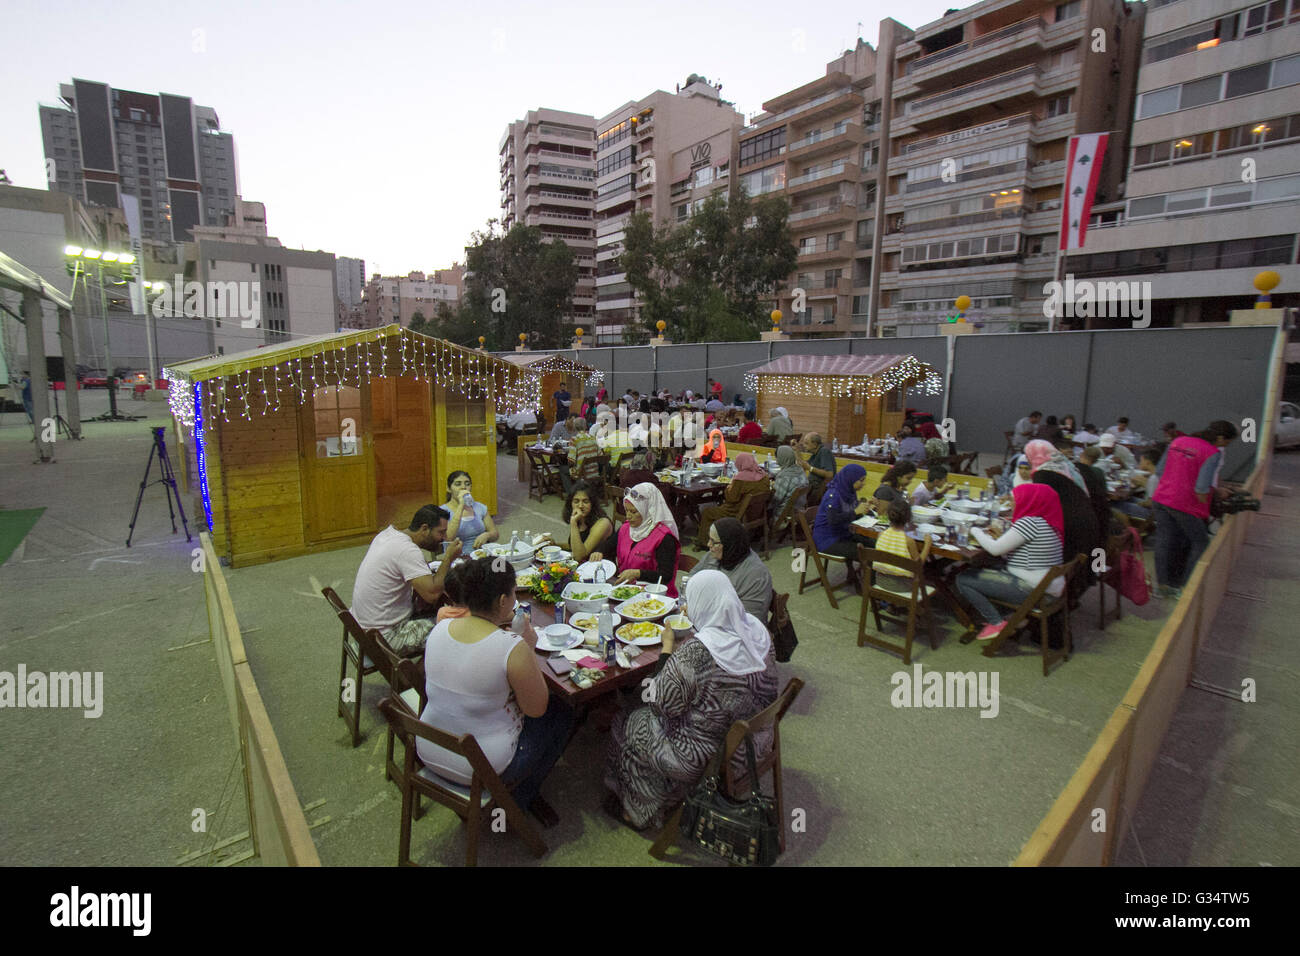 Beirut Lebanon. 8th June 2016. Devout Muslim families prepare to end their Ramadan fast known as 'Iftar' - Stock Image